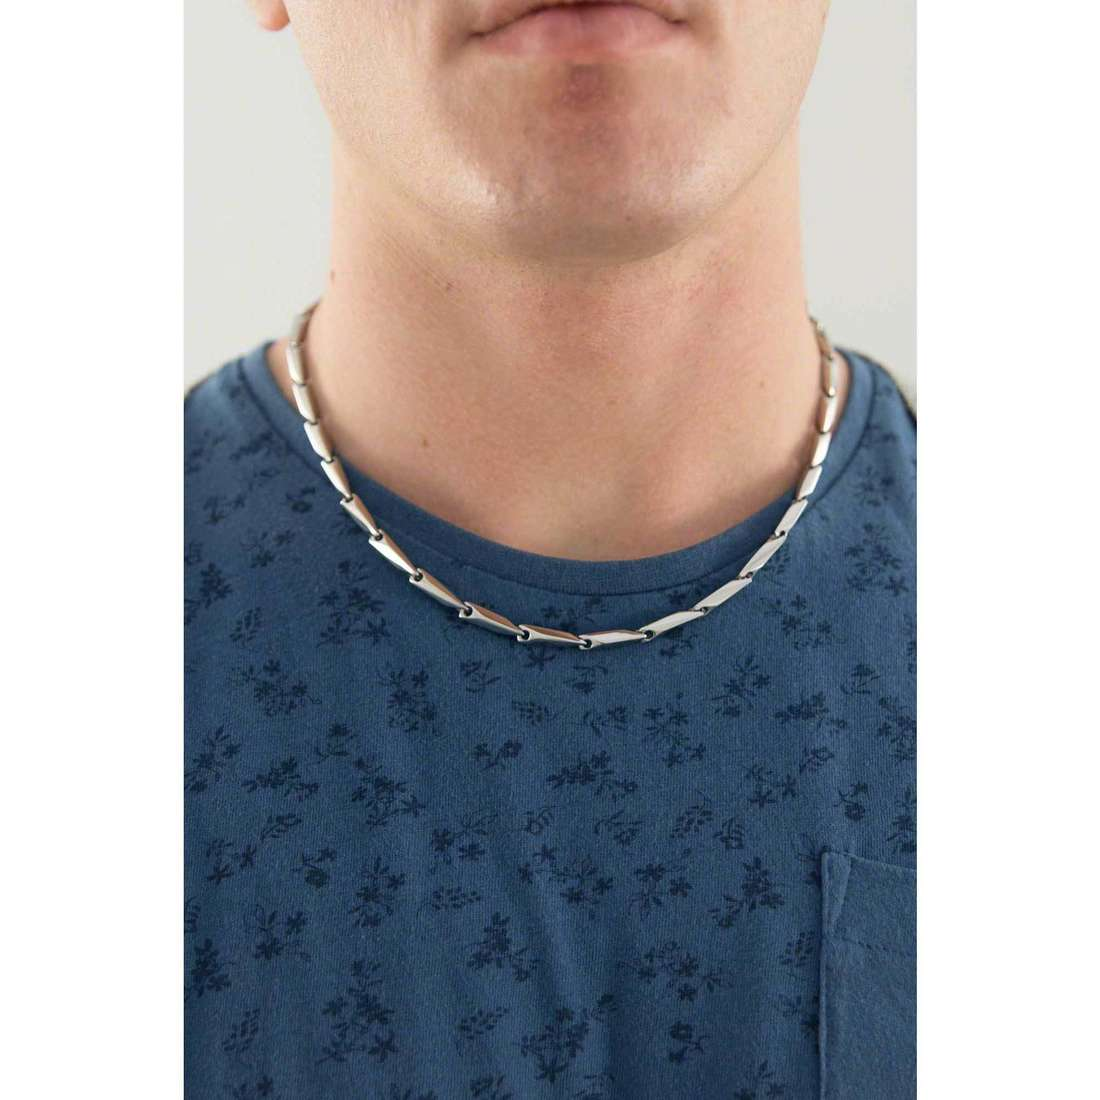 Sector necklaces Energy man SLI54 indosso